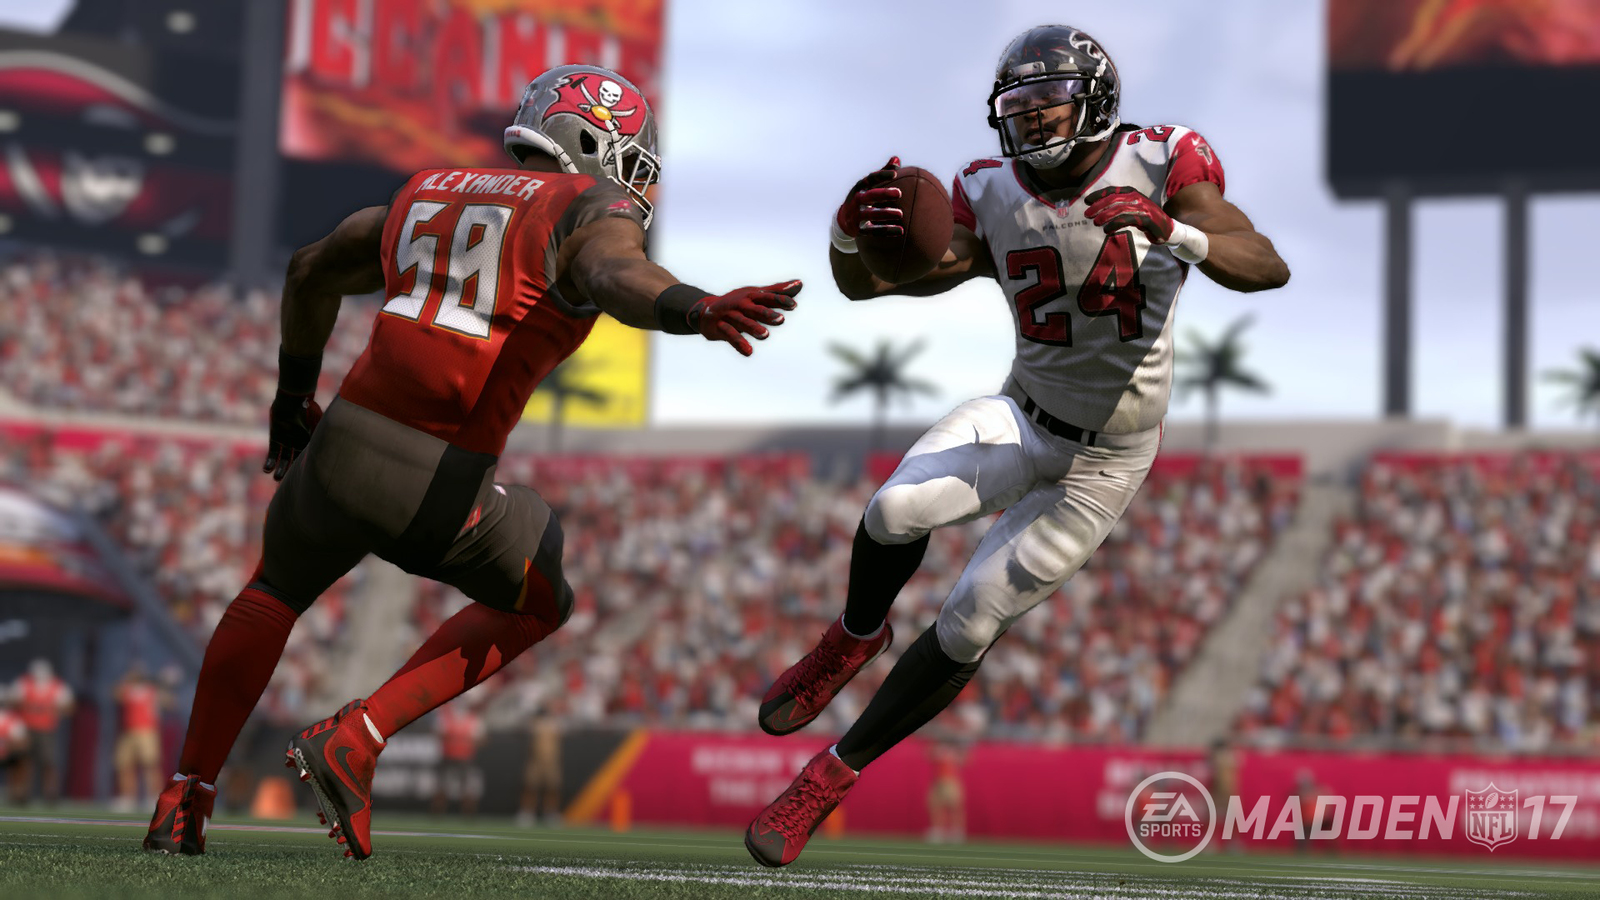 Madden NFL 17 for Xbox One image